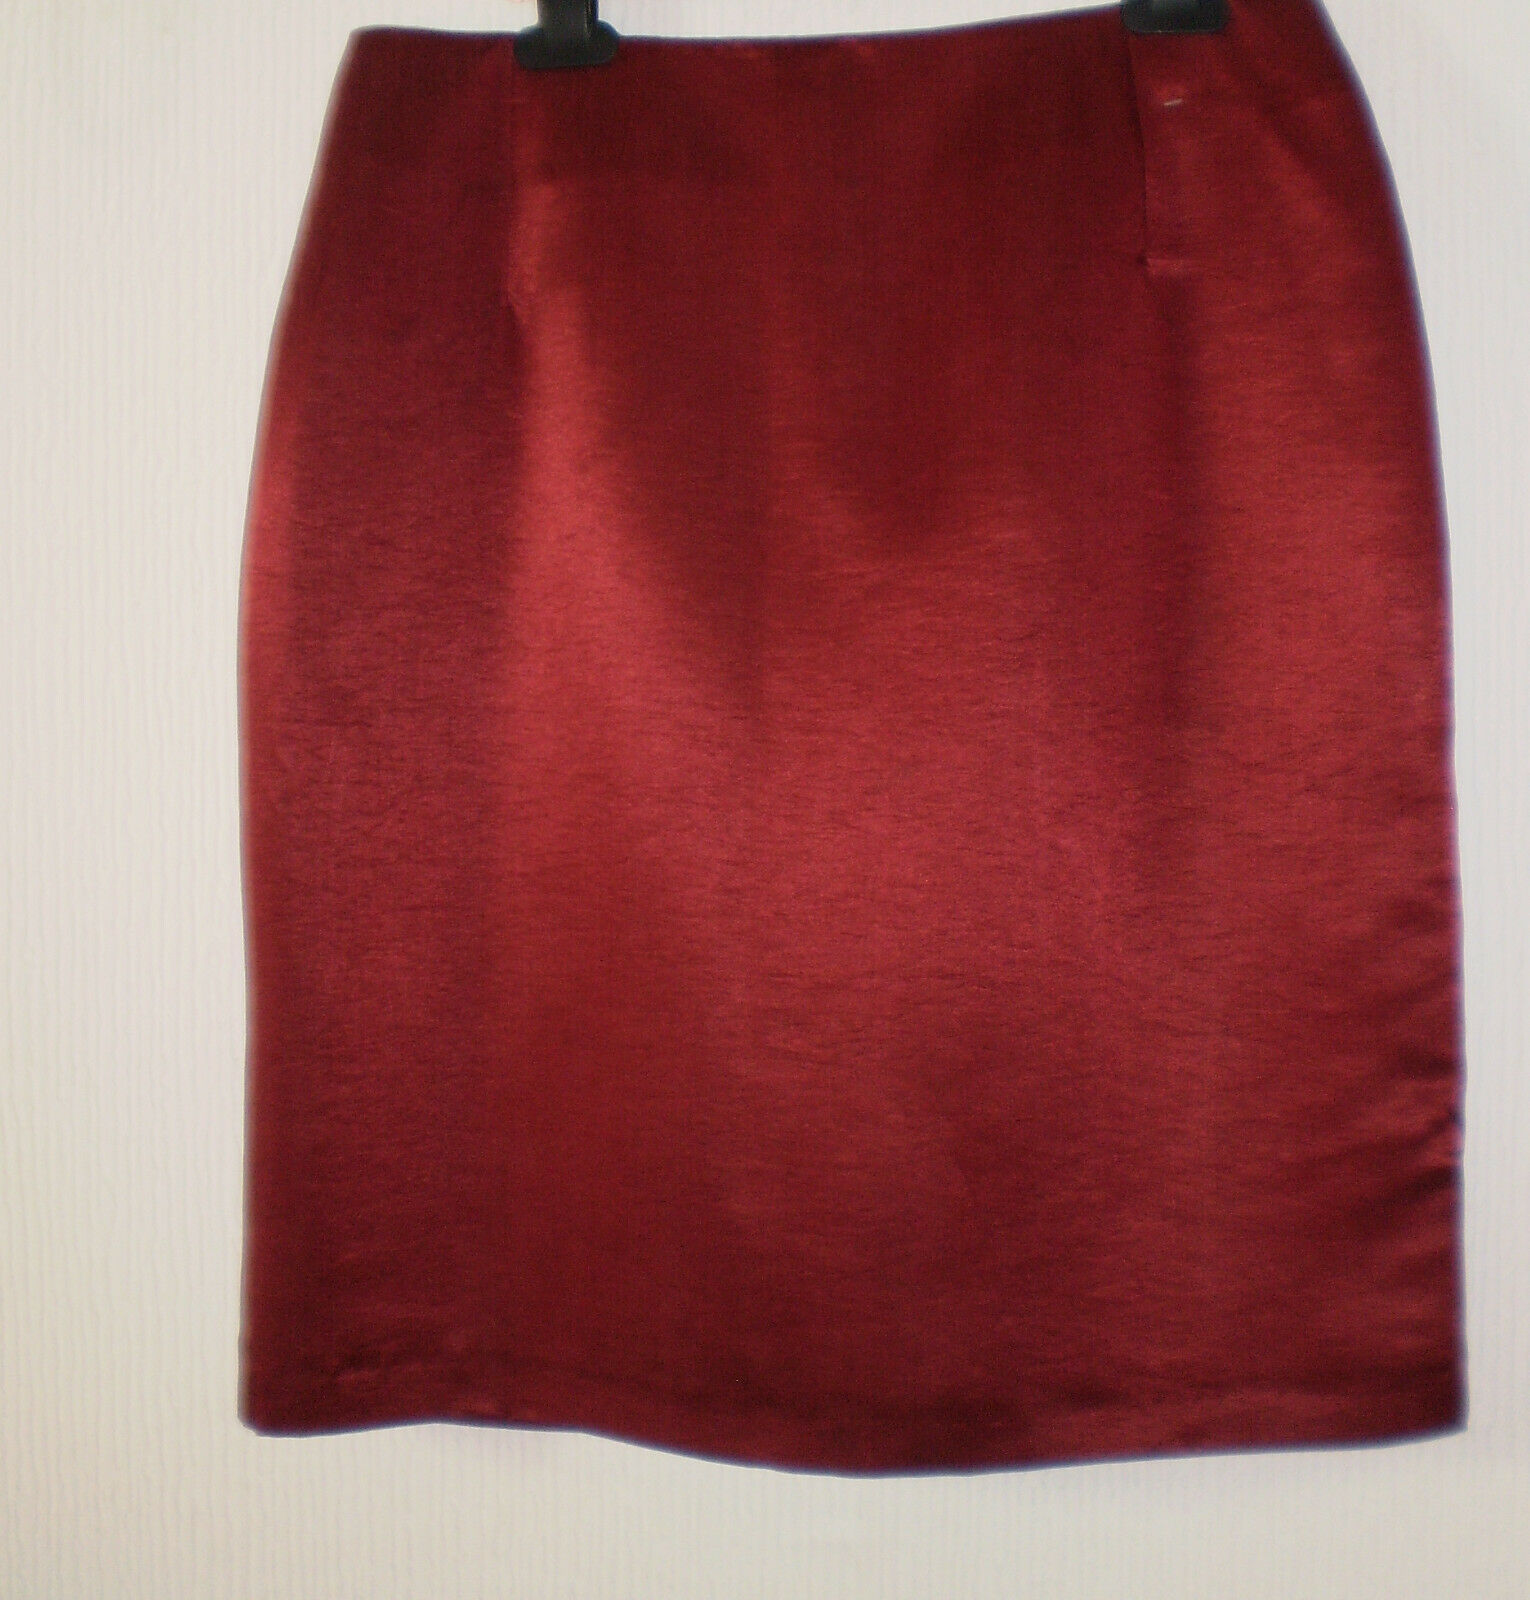 Primary image for  BHS New Sexy Port Wine Colour Casual or Party Short Pencil Skirt Size 14